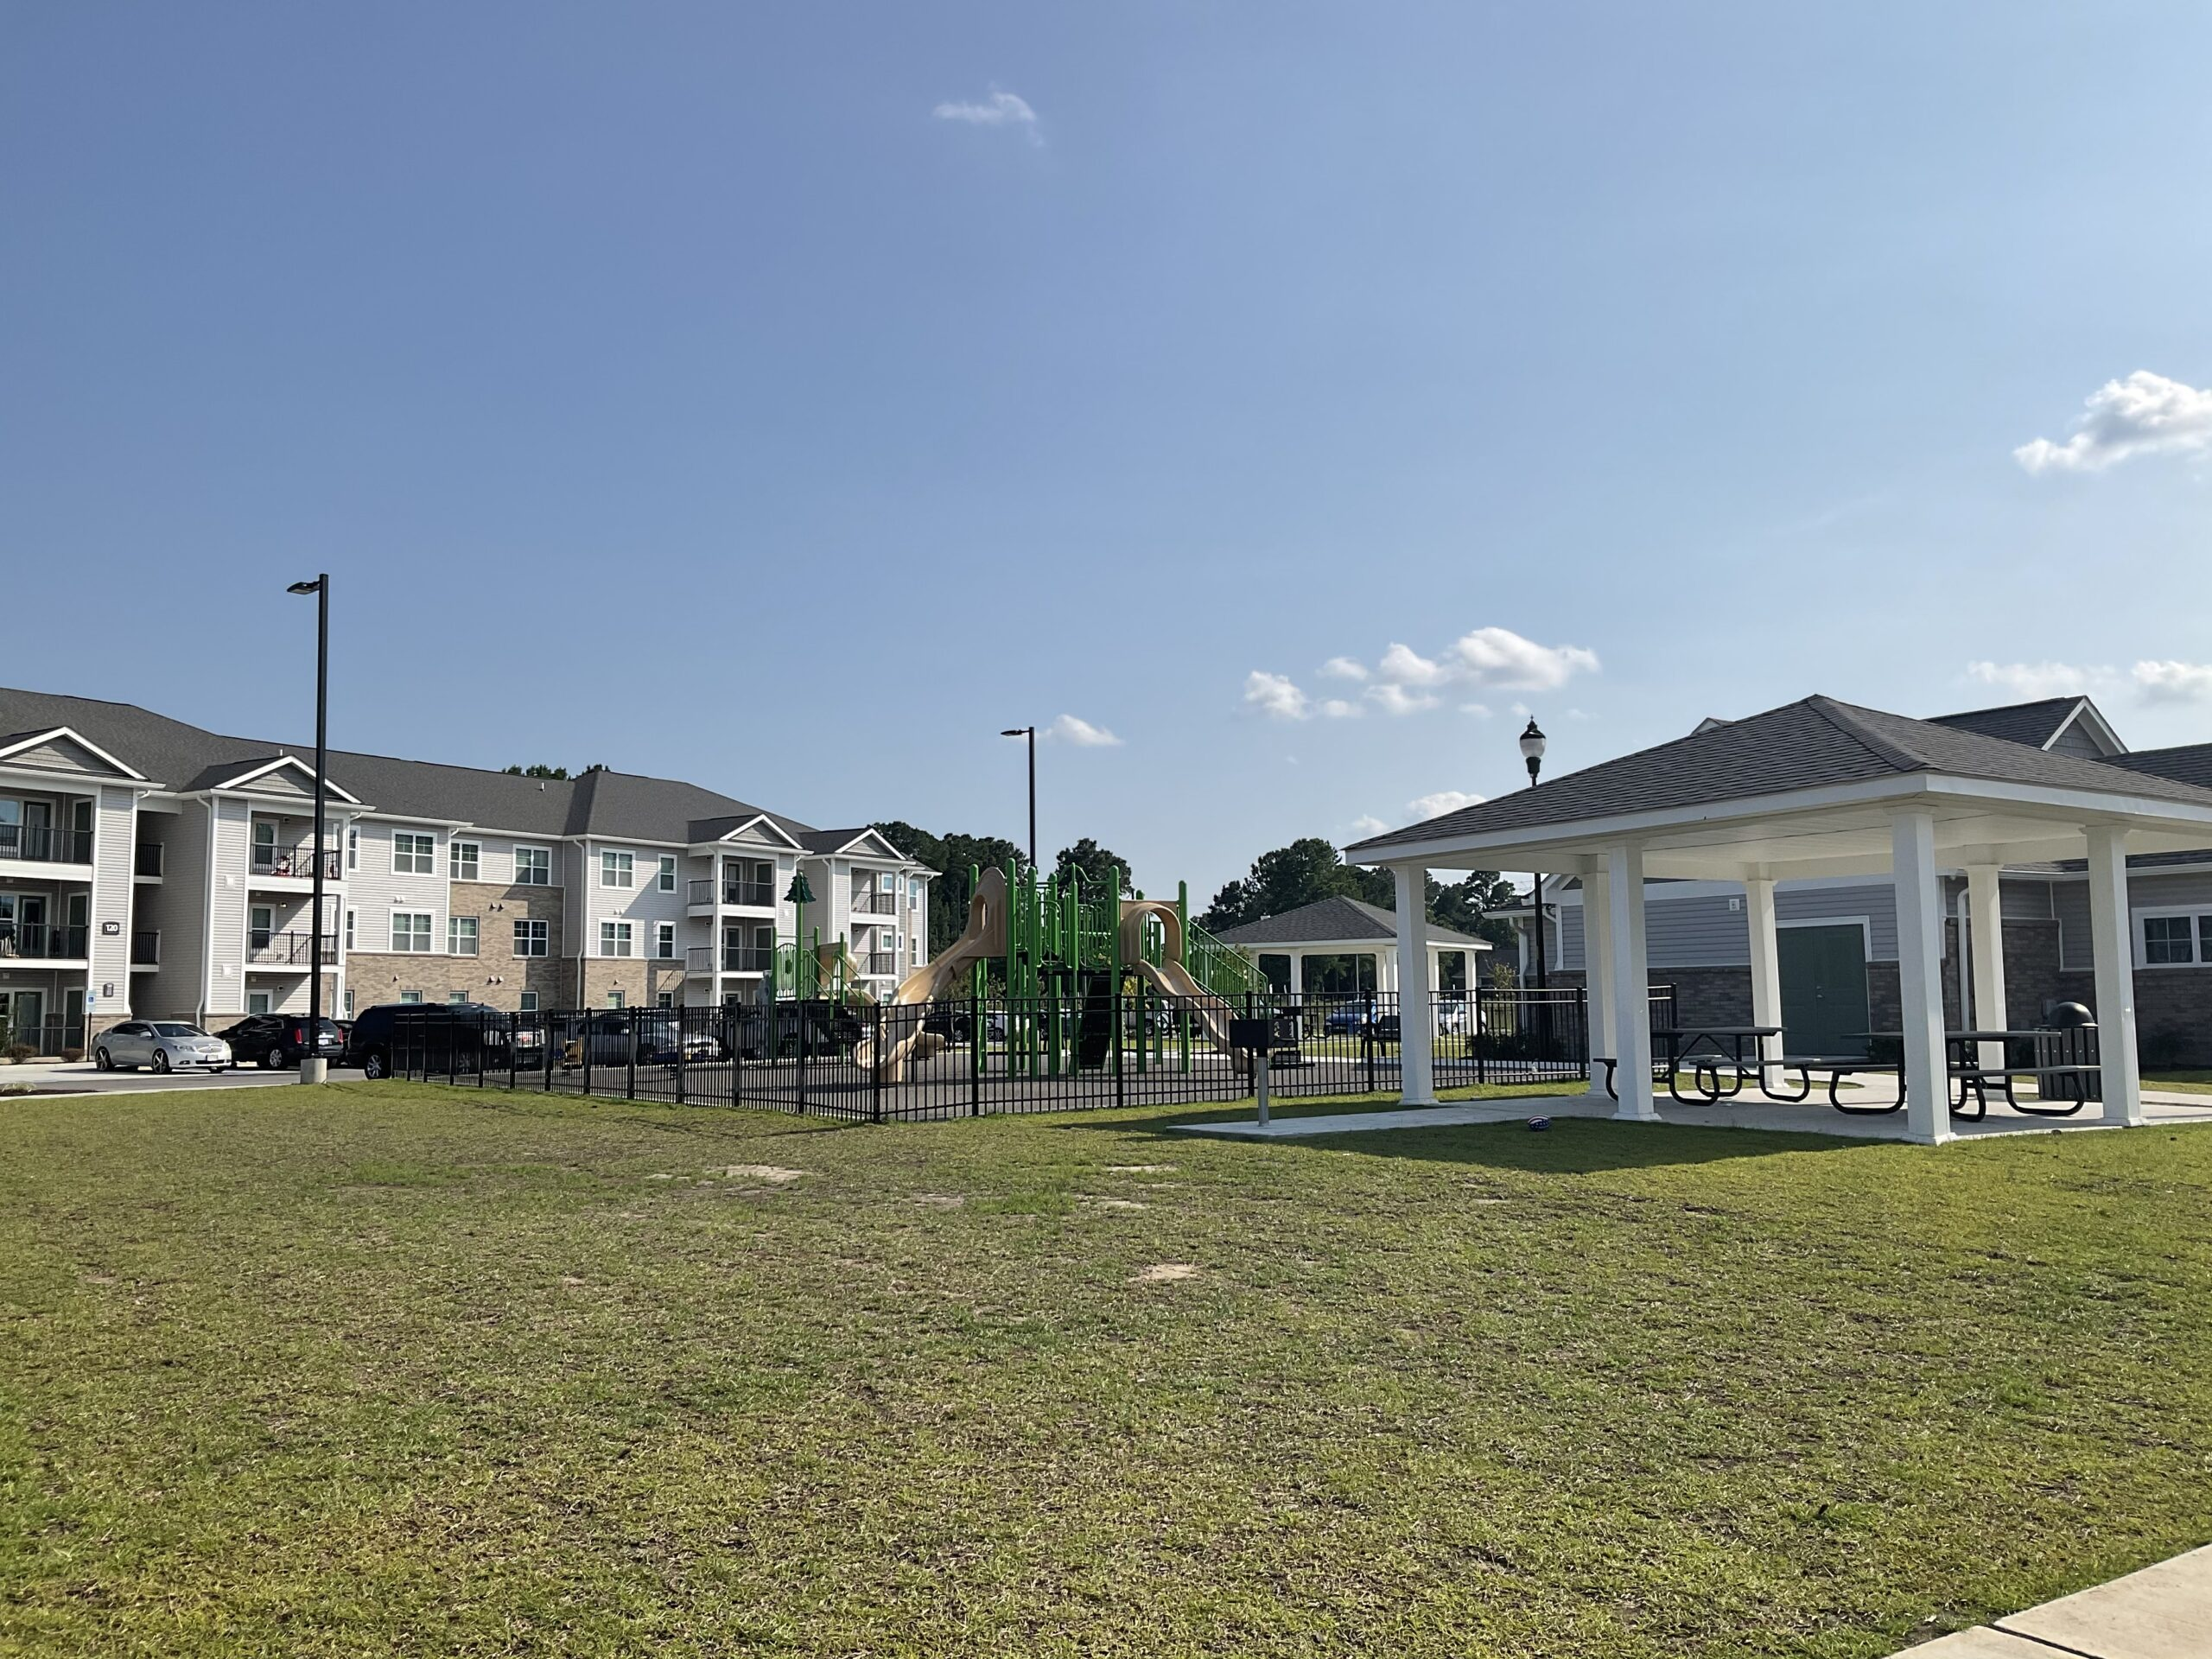 picnic pavilion, playground, and apartments